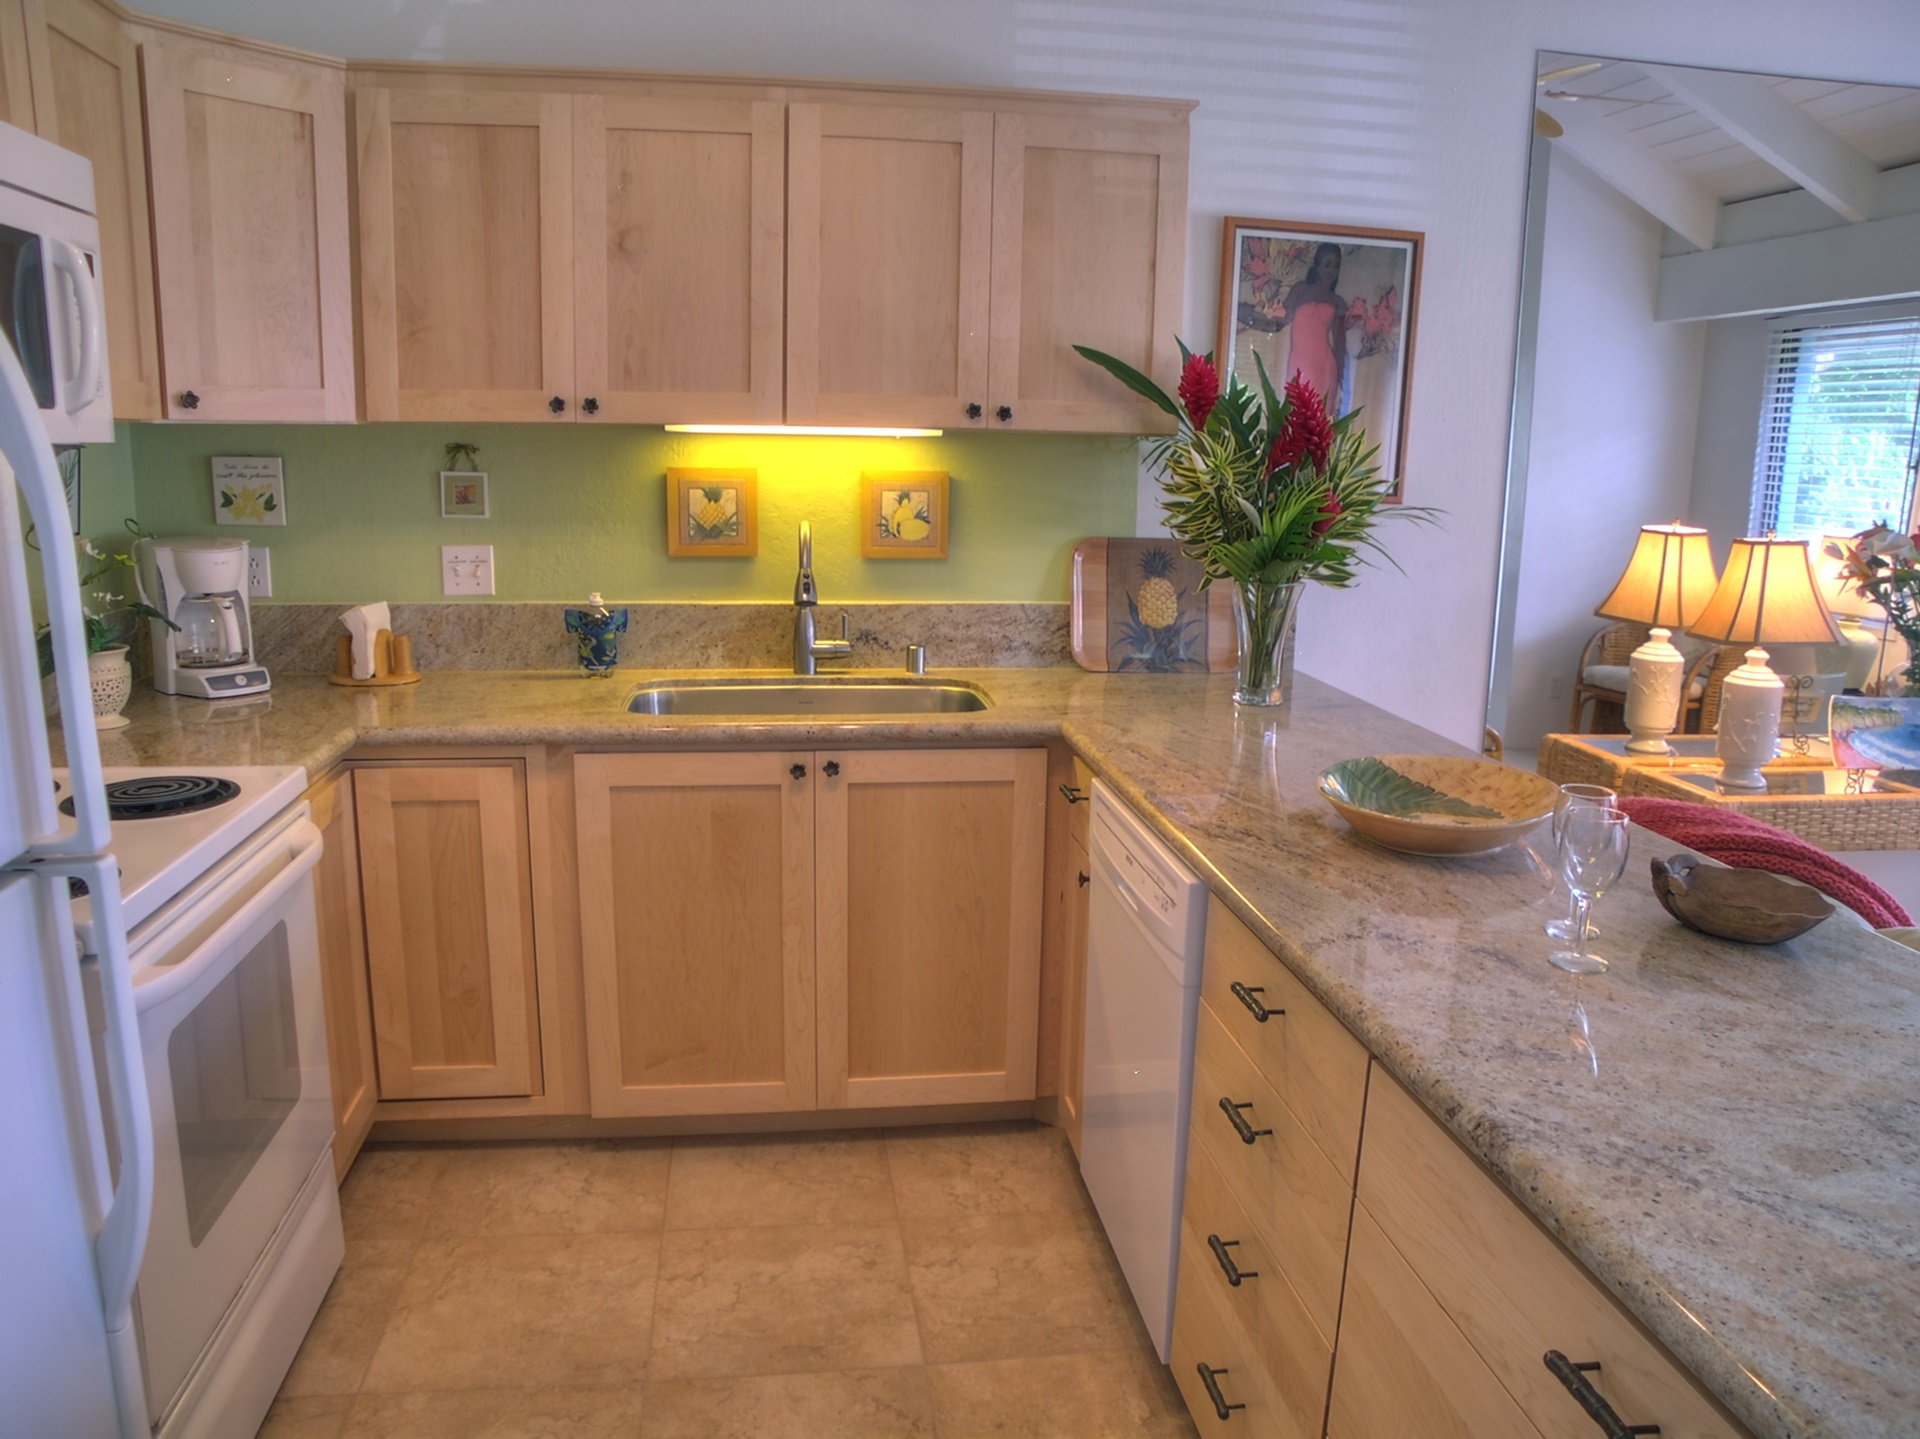 The fully equipped kitchen offers plenty of counter space to create your culinary island delights.